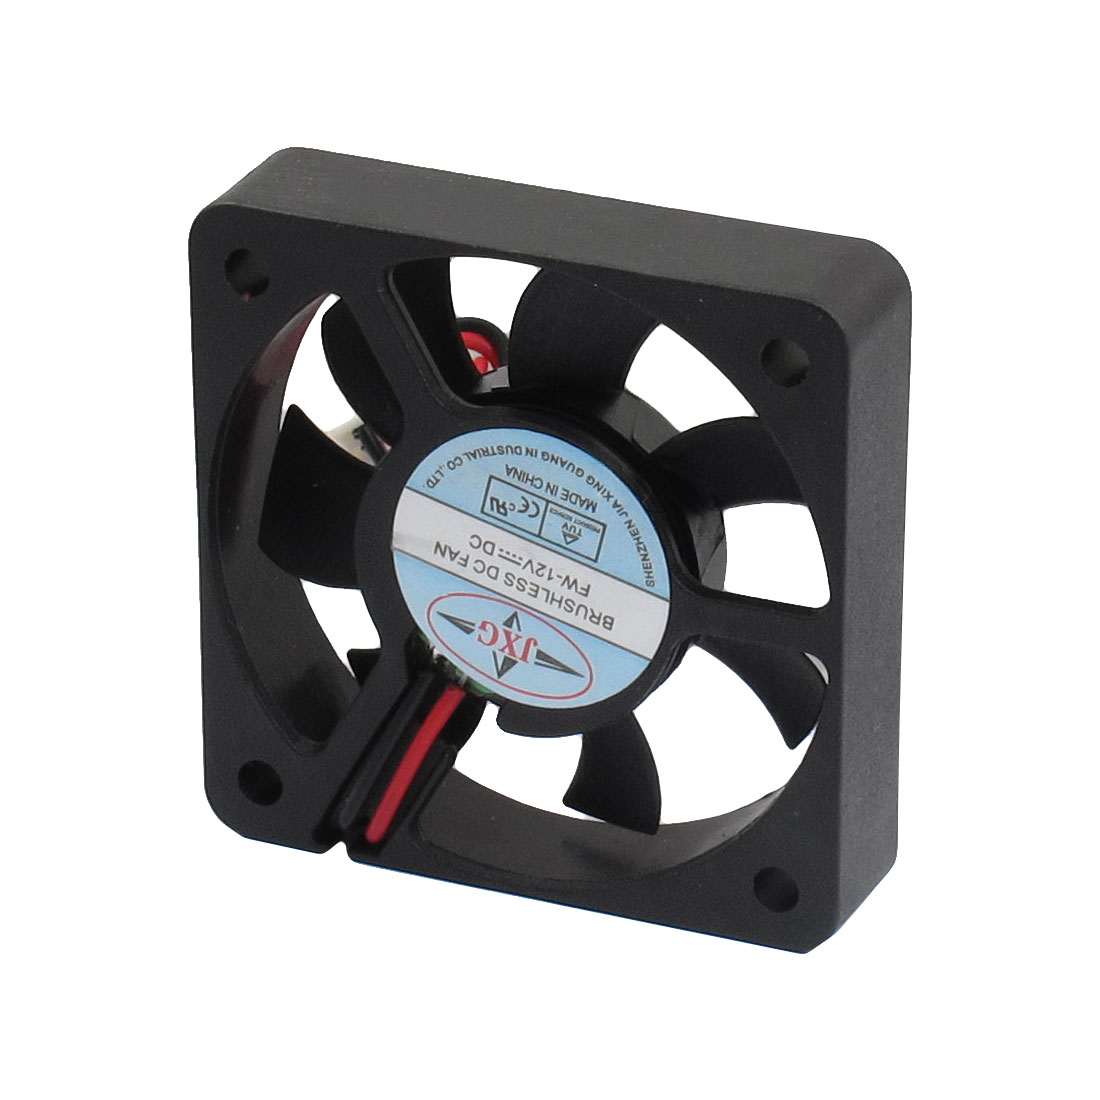 Unique Bargains DC 12V 2 Pins Connector Brushless Cooling Fan 50mm x 50mm x 10mm at Sears.com